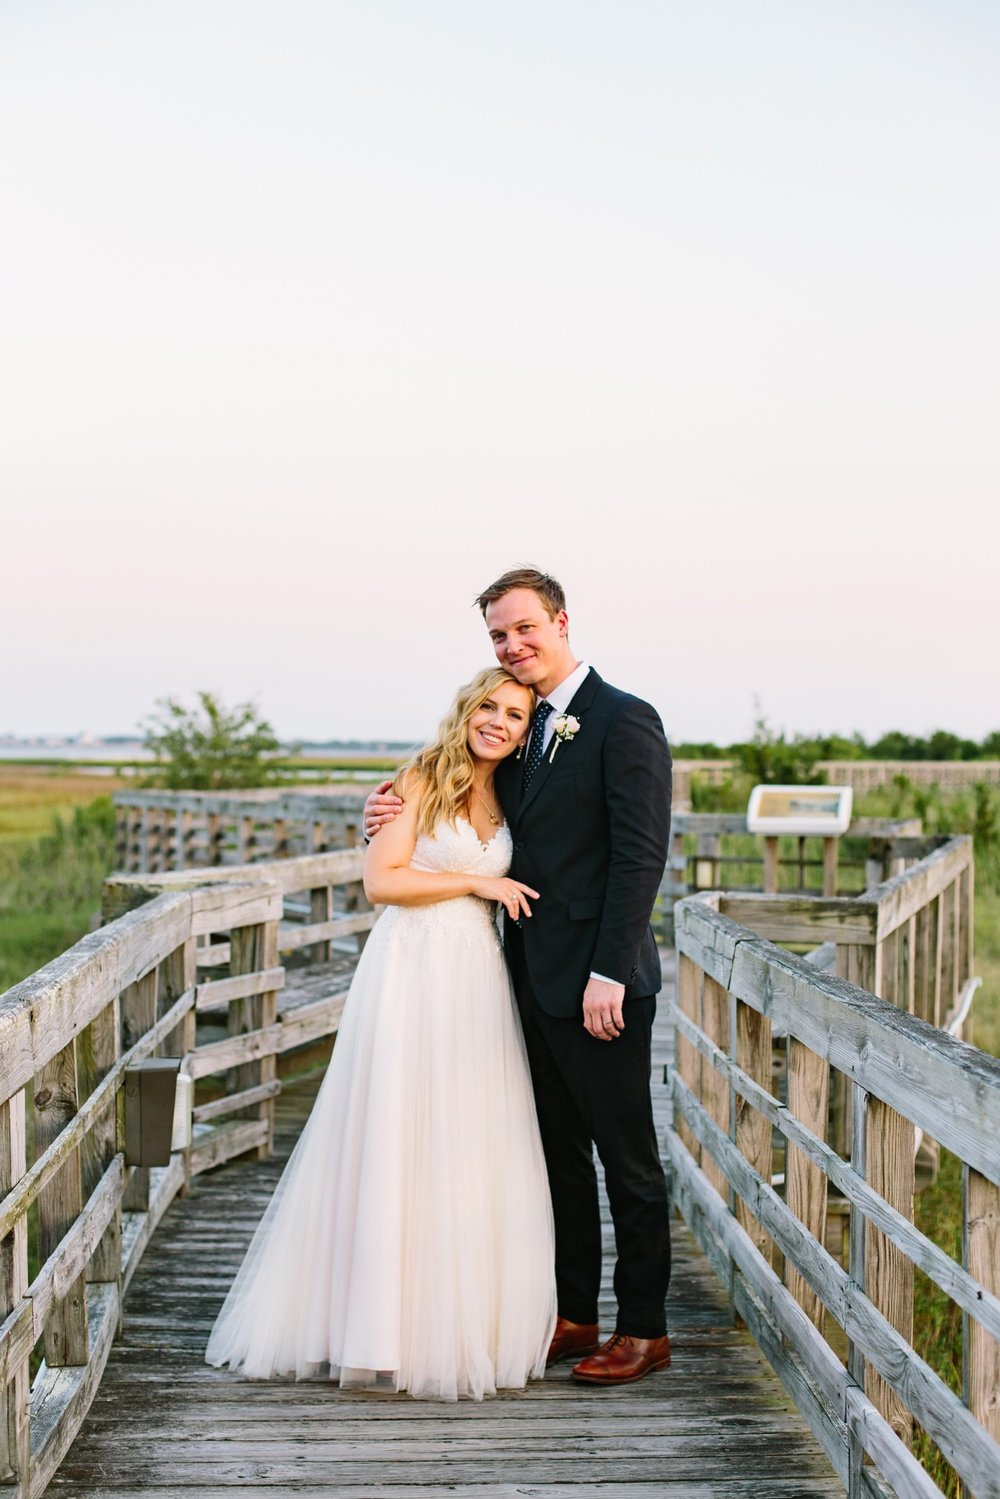 Lindsey_A_Miller_Photography_wedding_southport_community_building_bubbly_events_north_carolina_coasta_cannon_nautical_historic_060.jpg